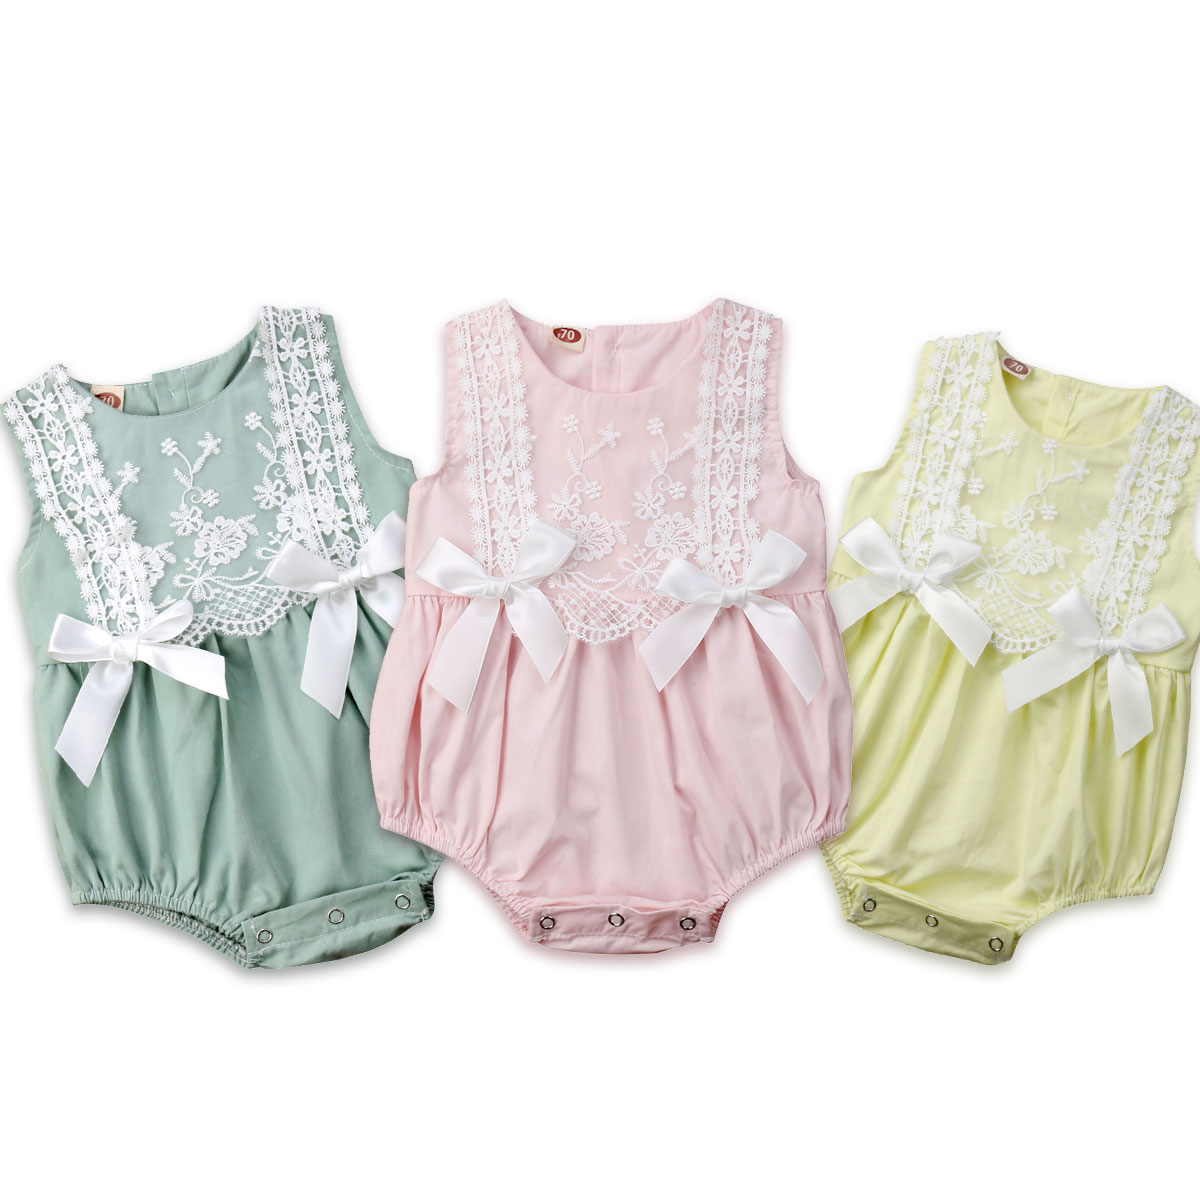 5a3feff85e2 Infant Newborn Baby Girls Clothing Lace Ruffles Rompers Jumpsuit Cute Bow Sunsuit  Summer 2019 Baby Girls